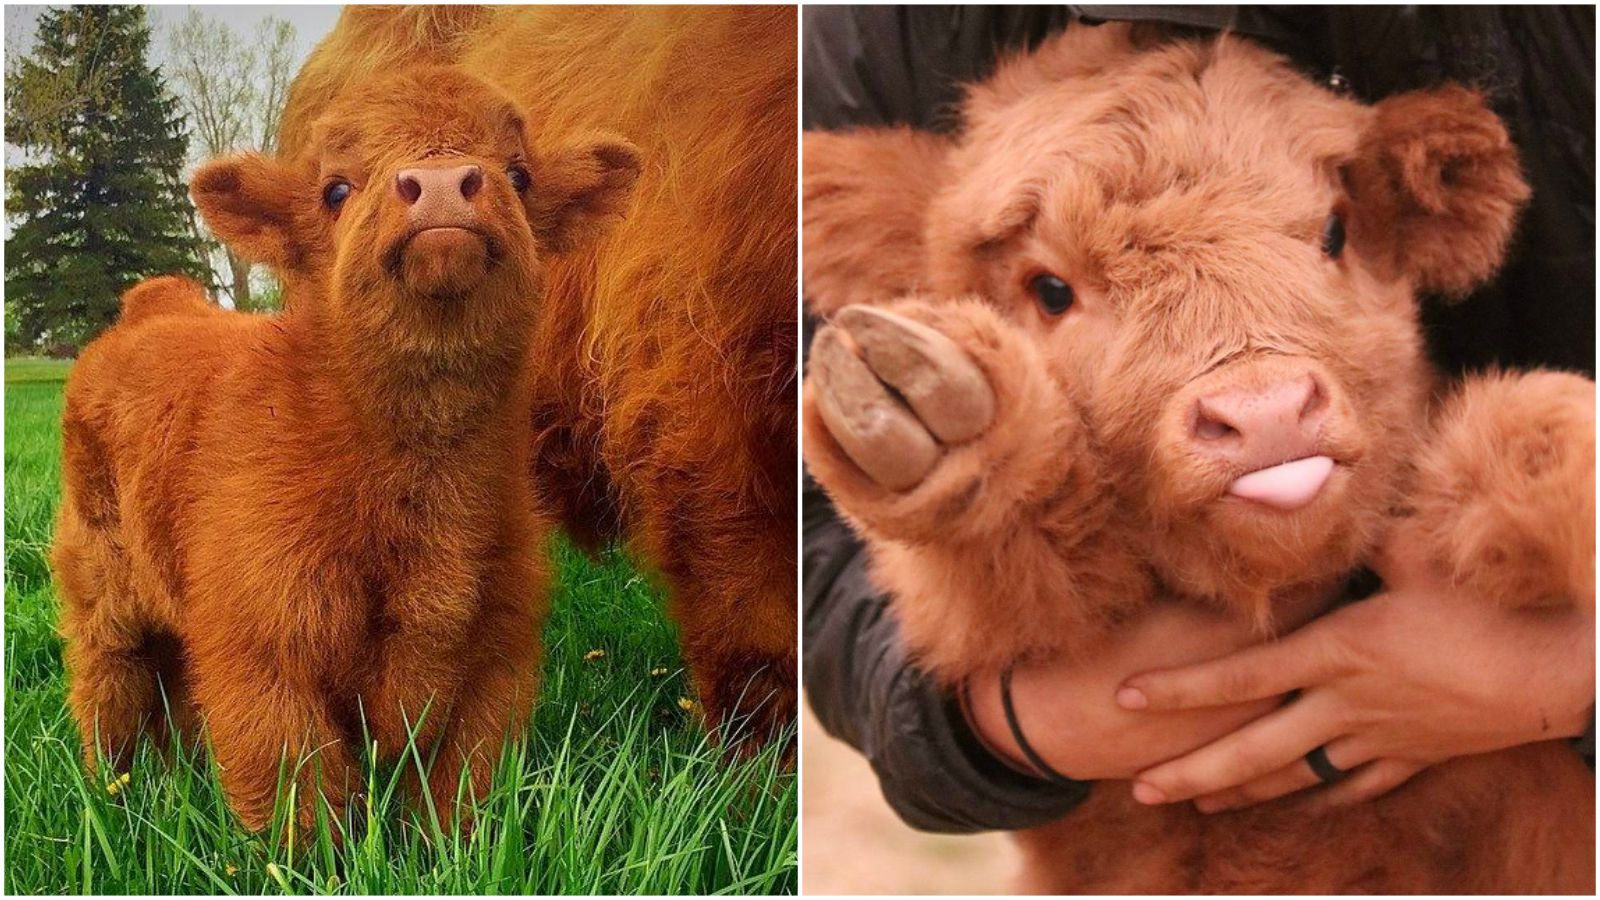 21 Highland Cattle Calf Photos to Bring a Smile to Your Day